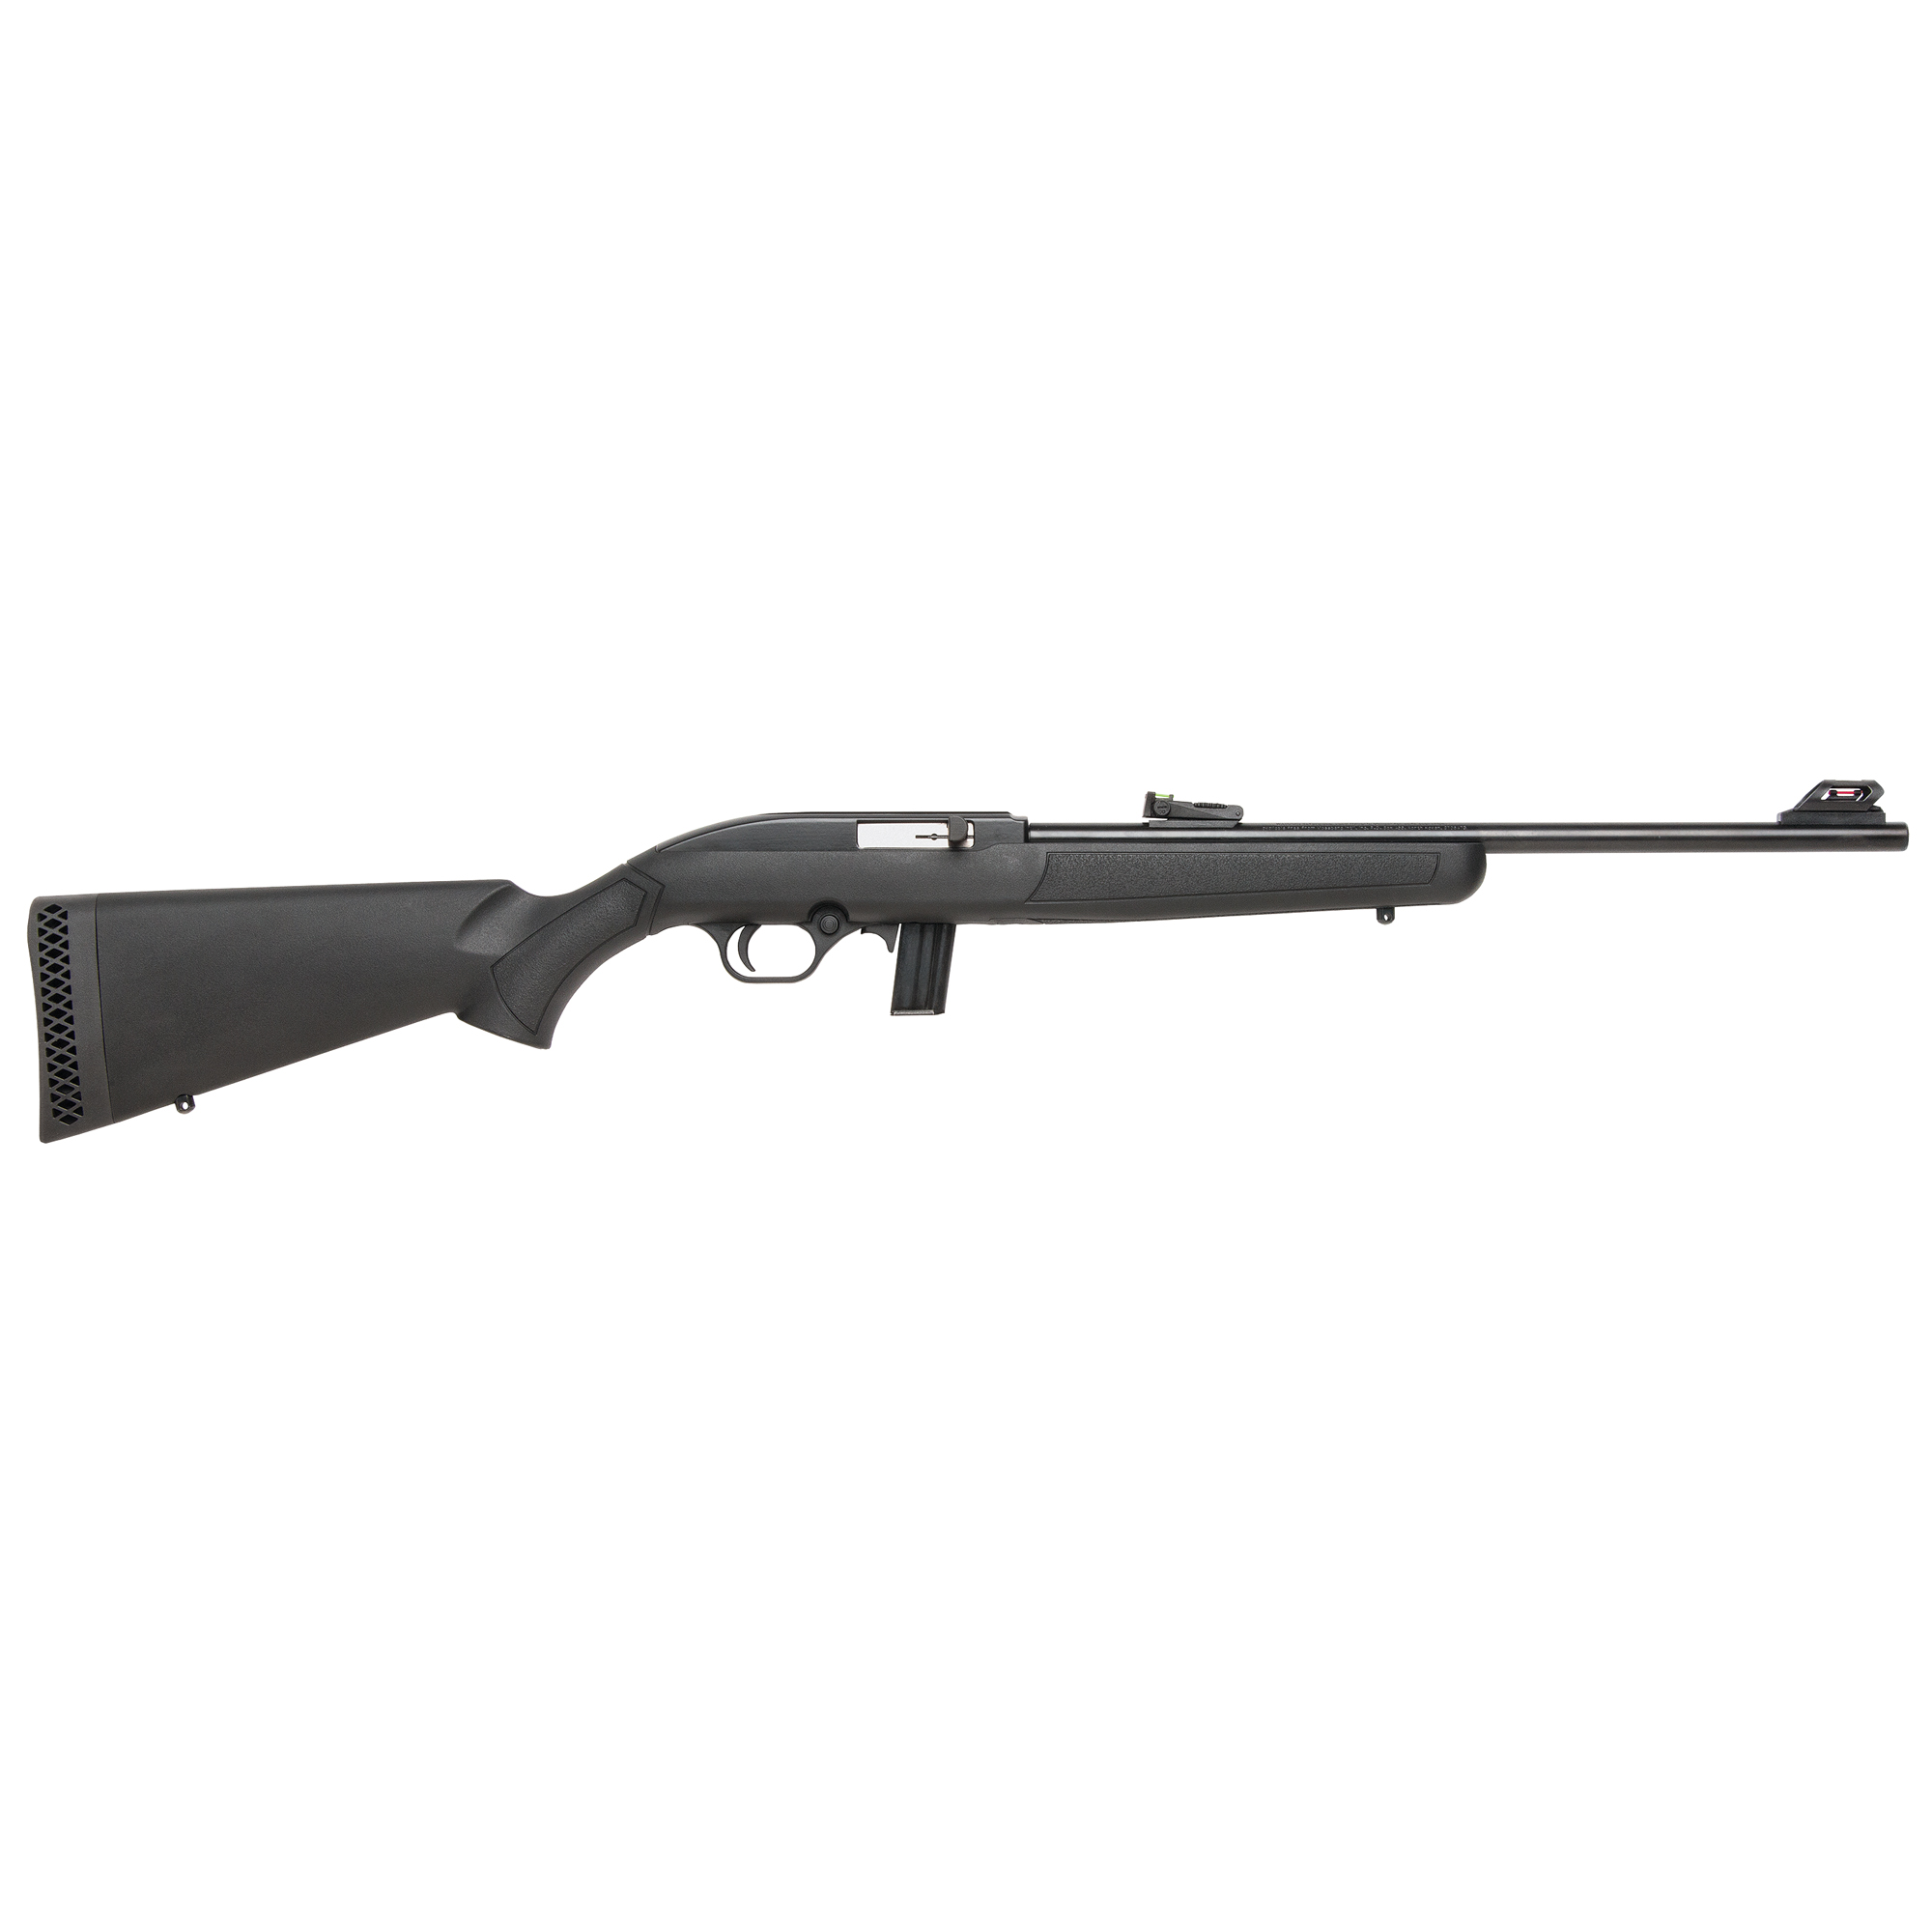 The Mossberg 702 Plinkster boasts a list of features that is hard to beat at any price.